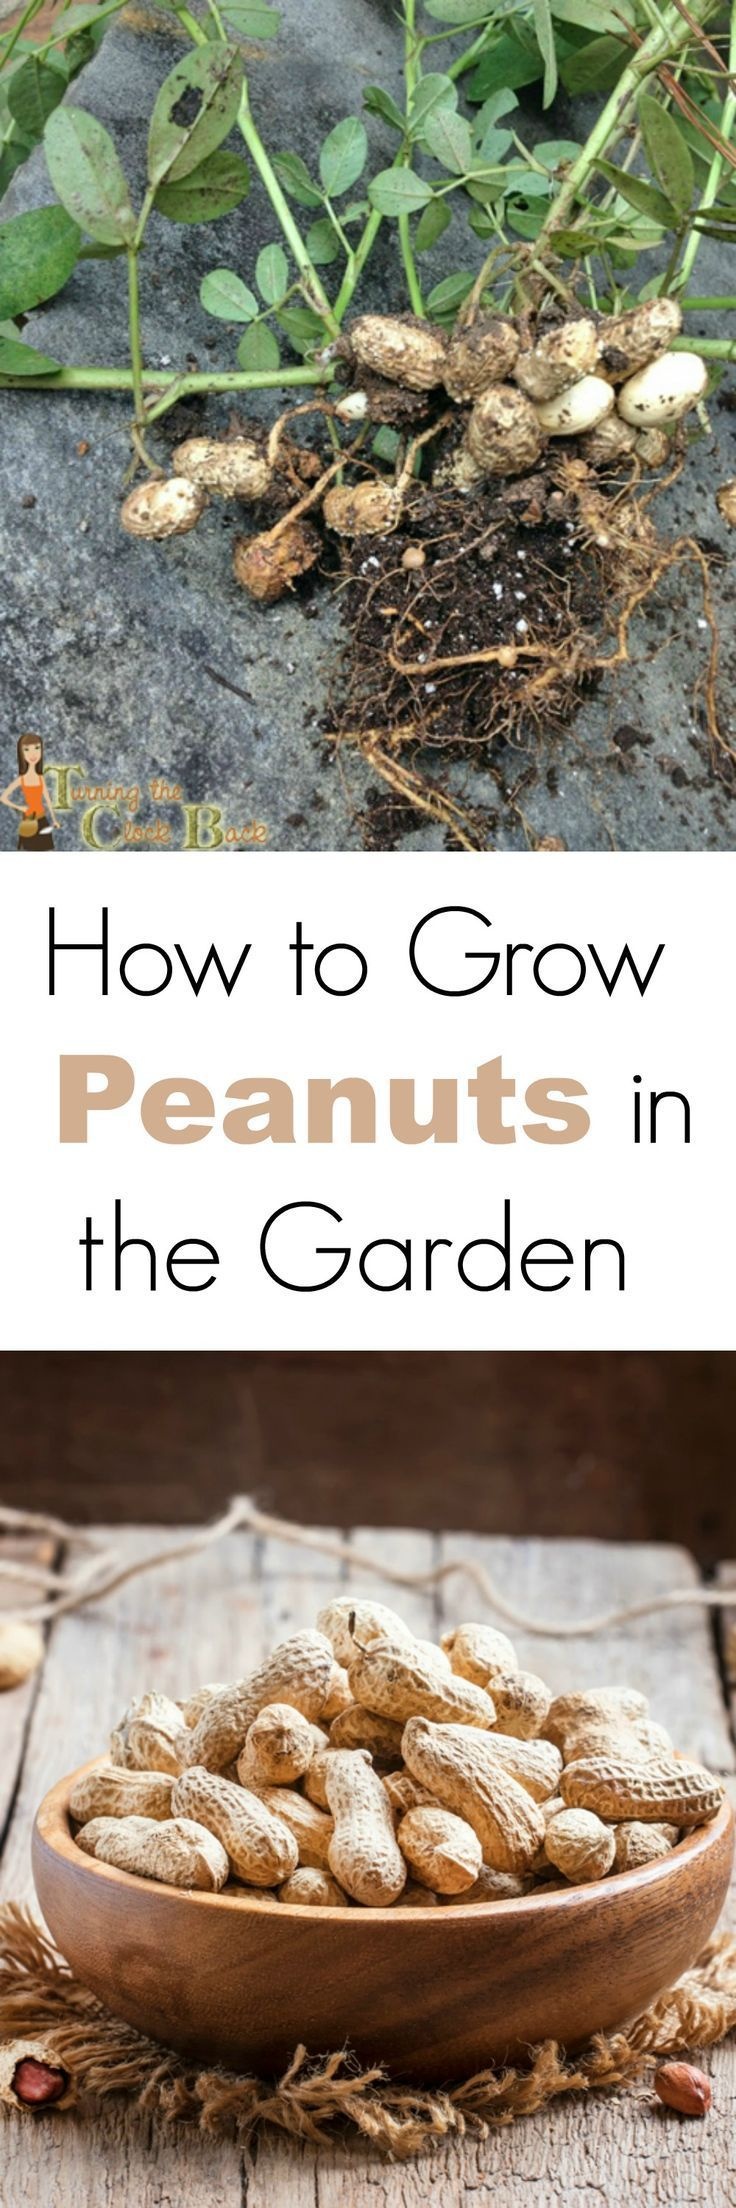 Growing peanuts is a tasty and educational garden project